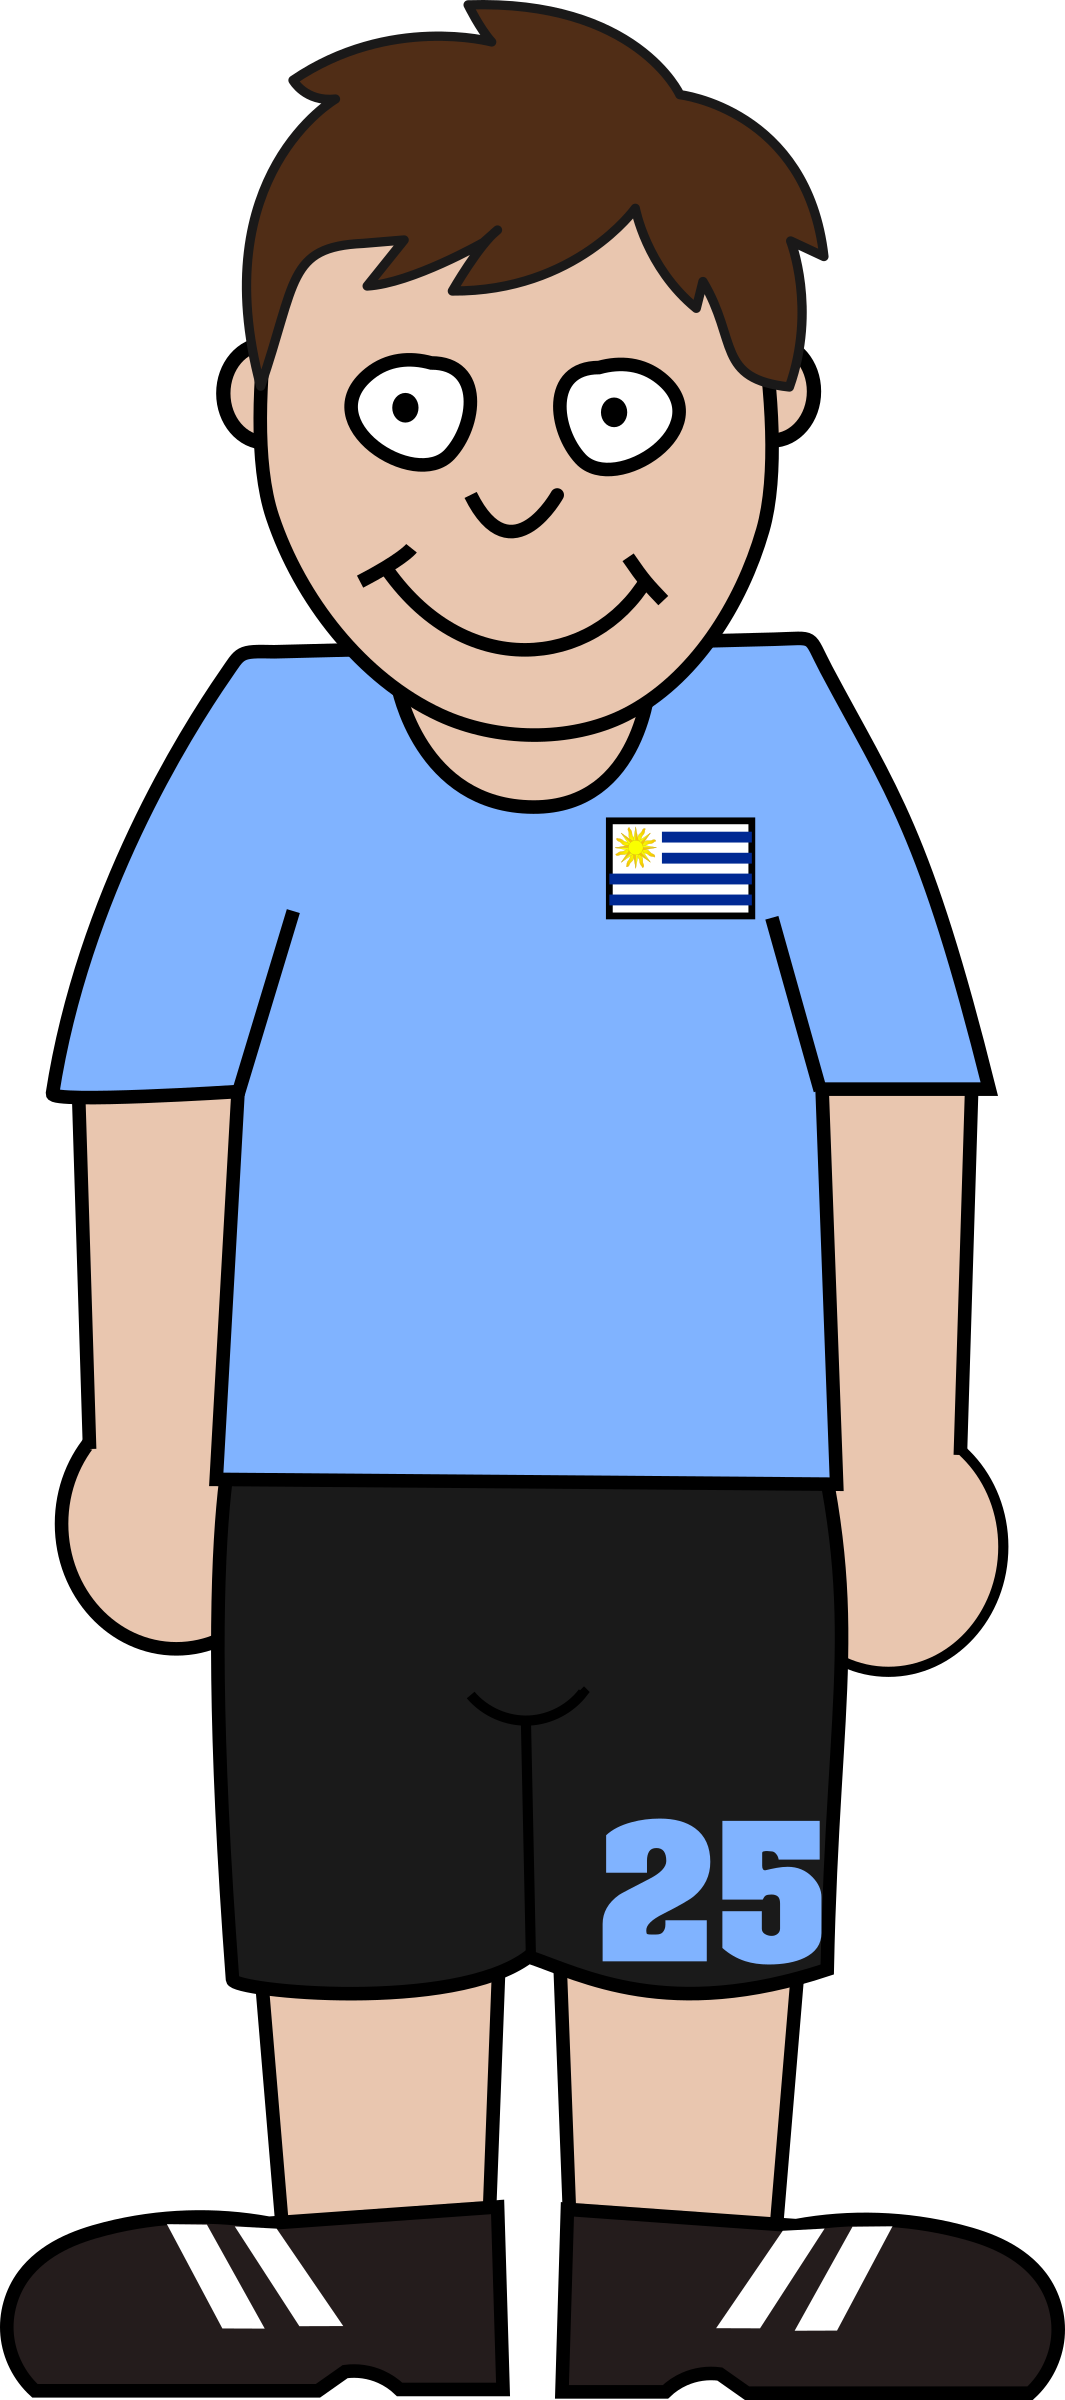 Clipart football player clipart free Clipart - Football player uruguay clipart free